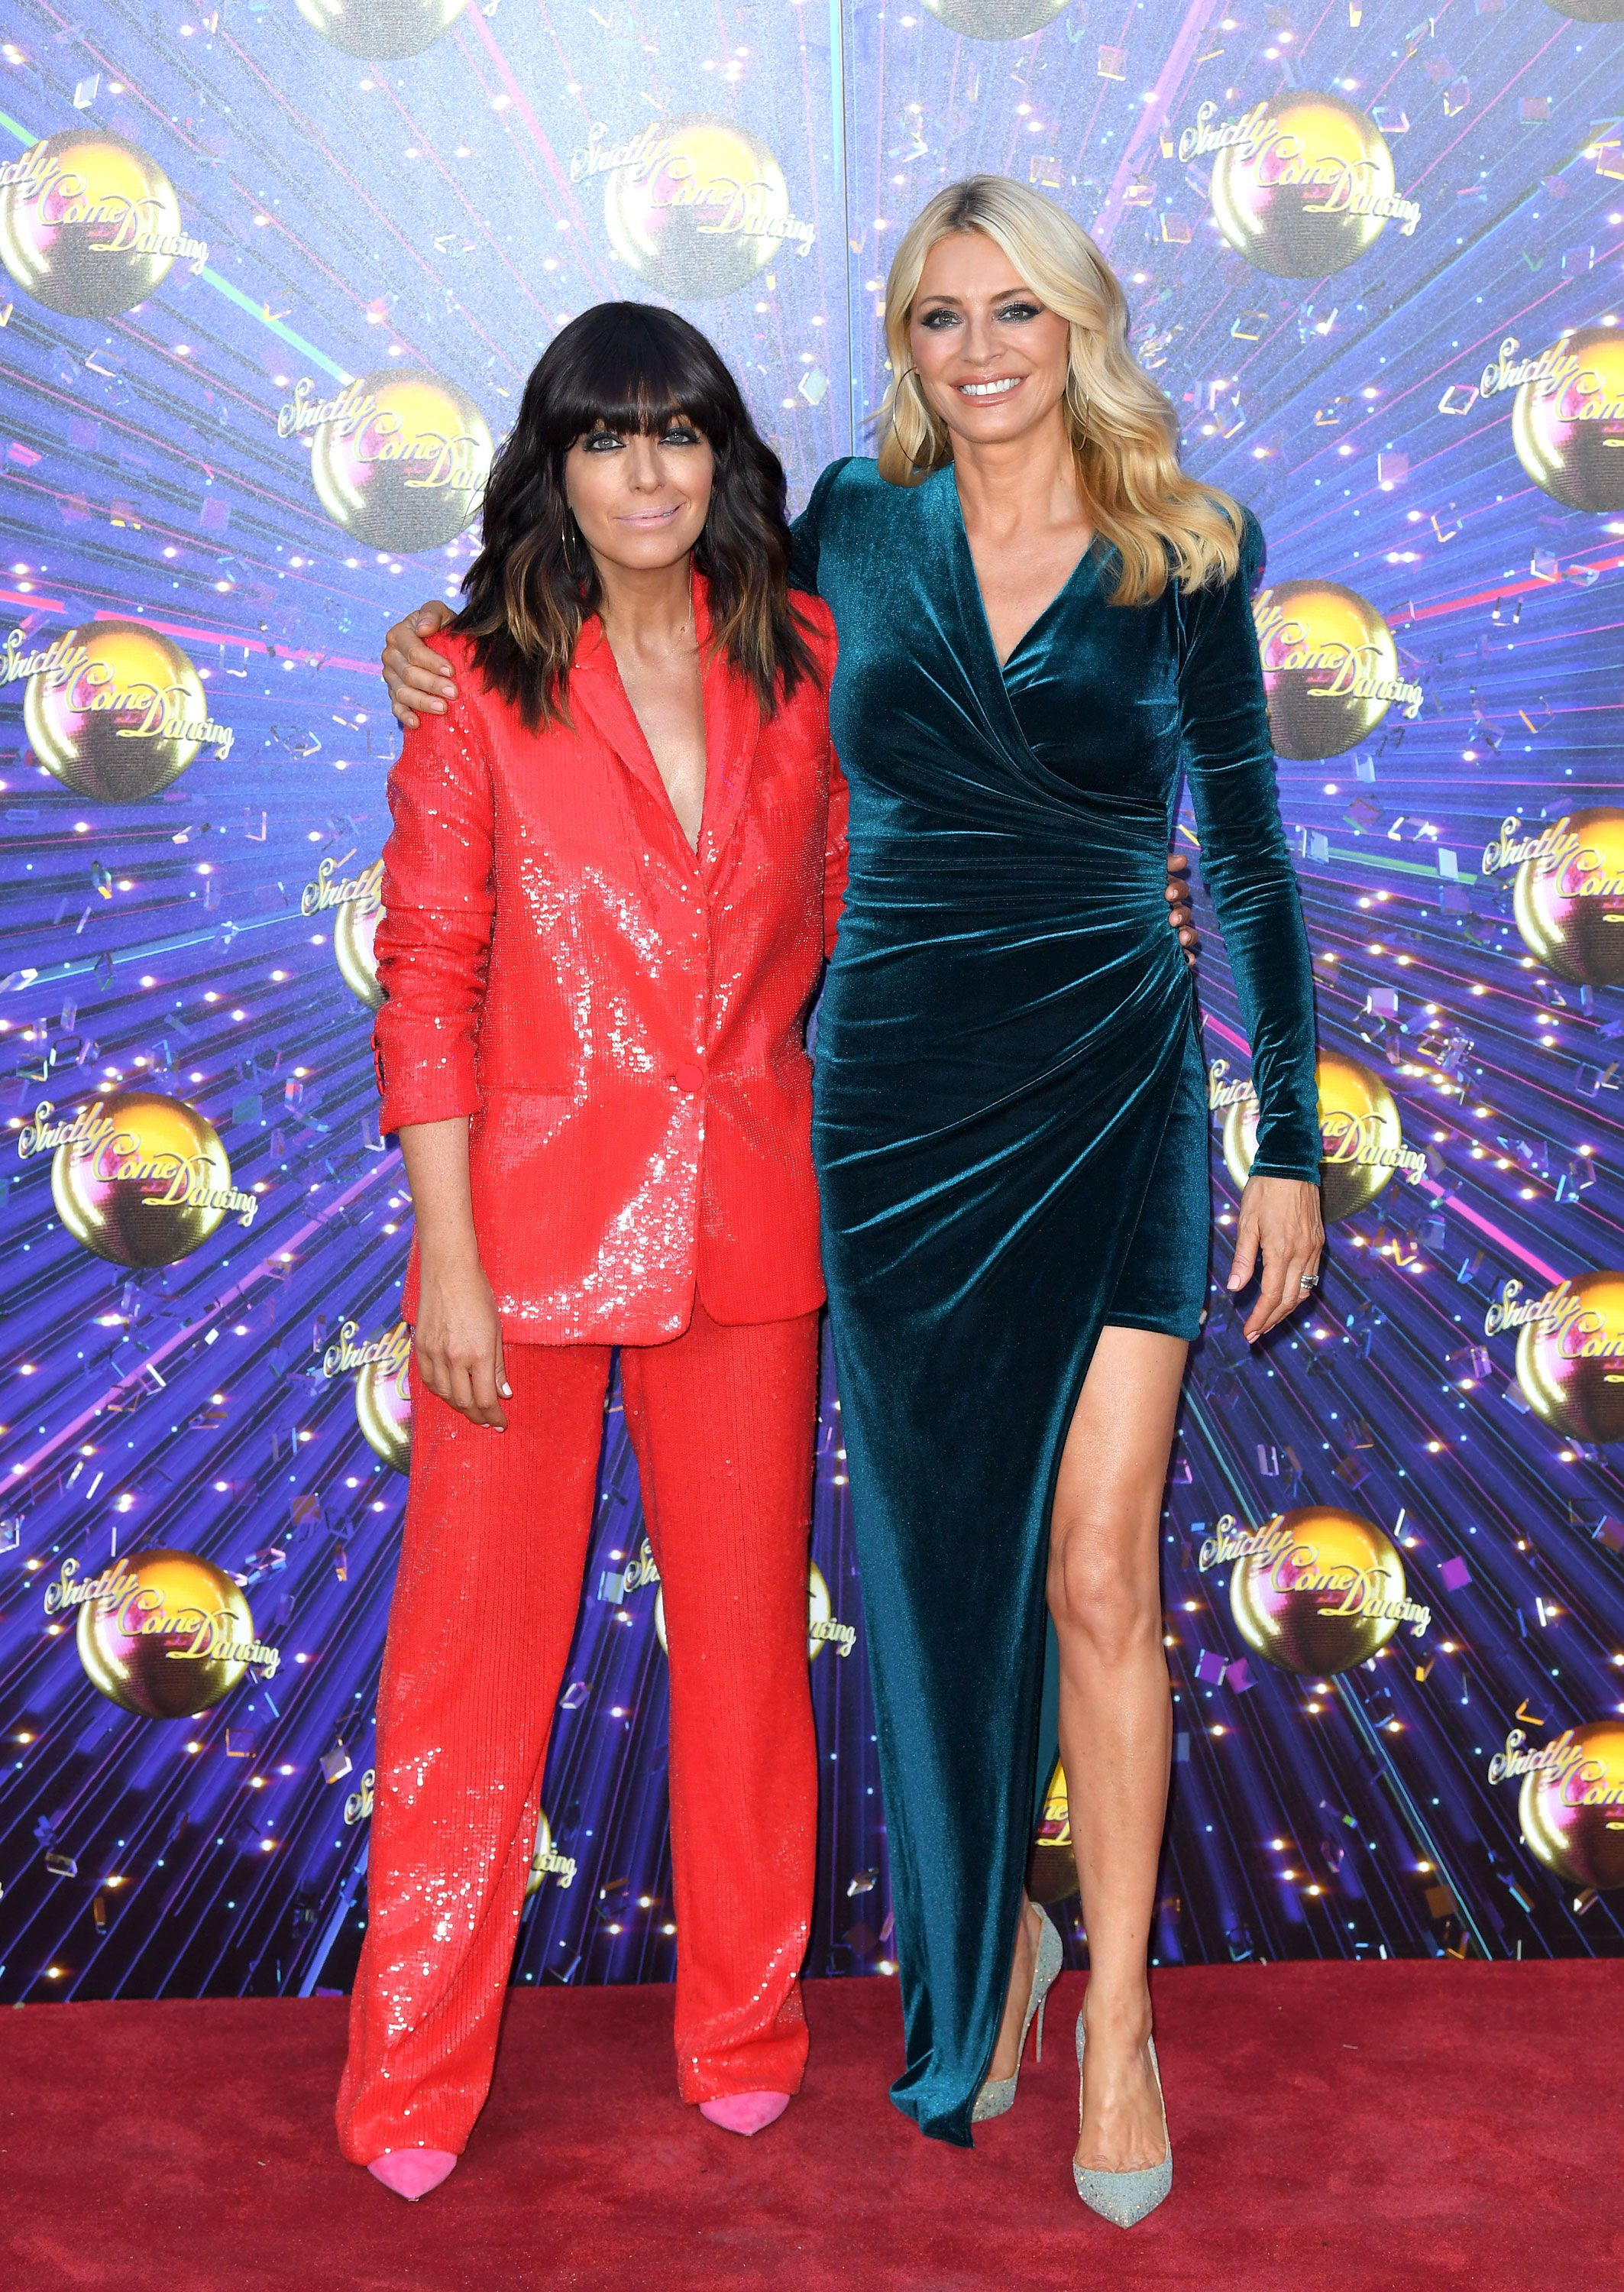 Strictly Come Dancing unveils its 2019 dance pairings